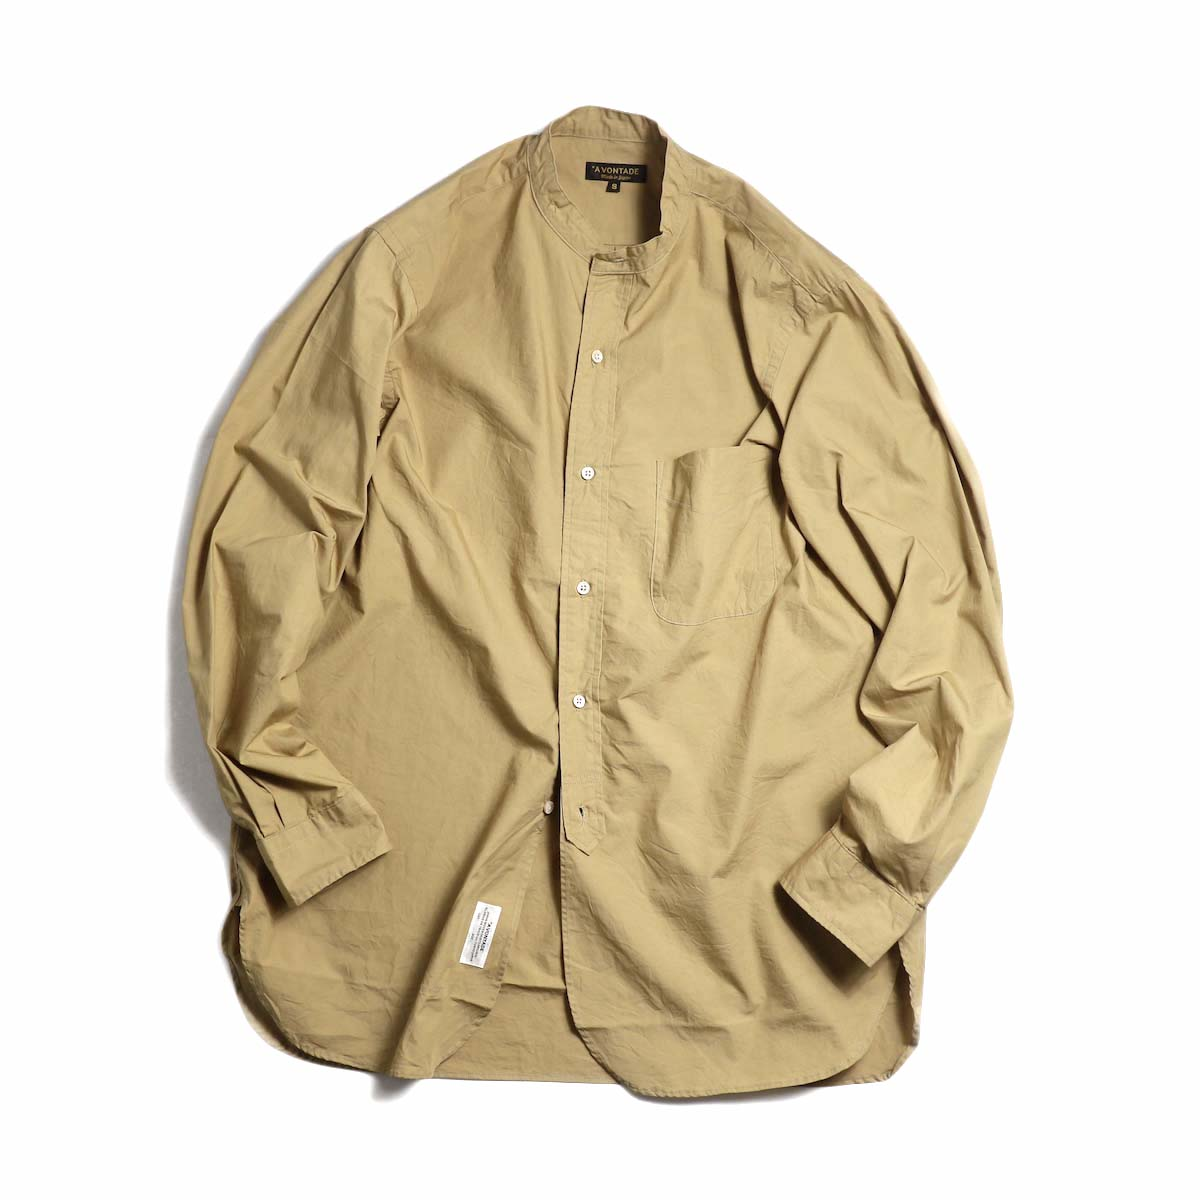 A VONTADE / Banded Collar Shirts -Beige